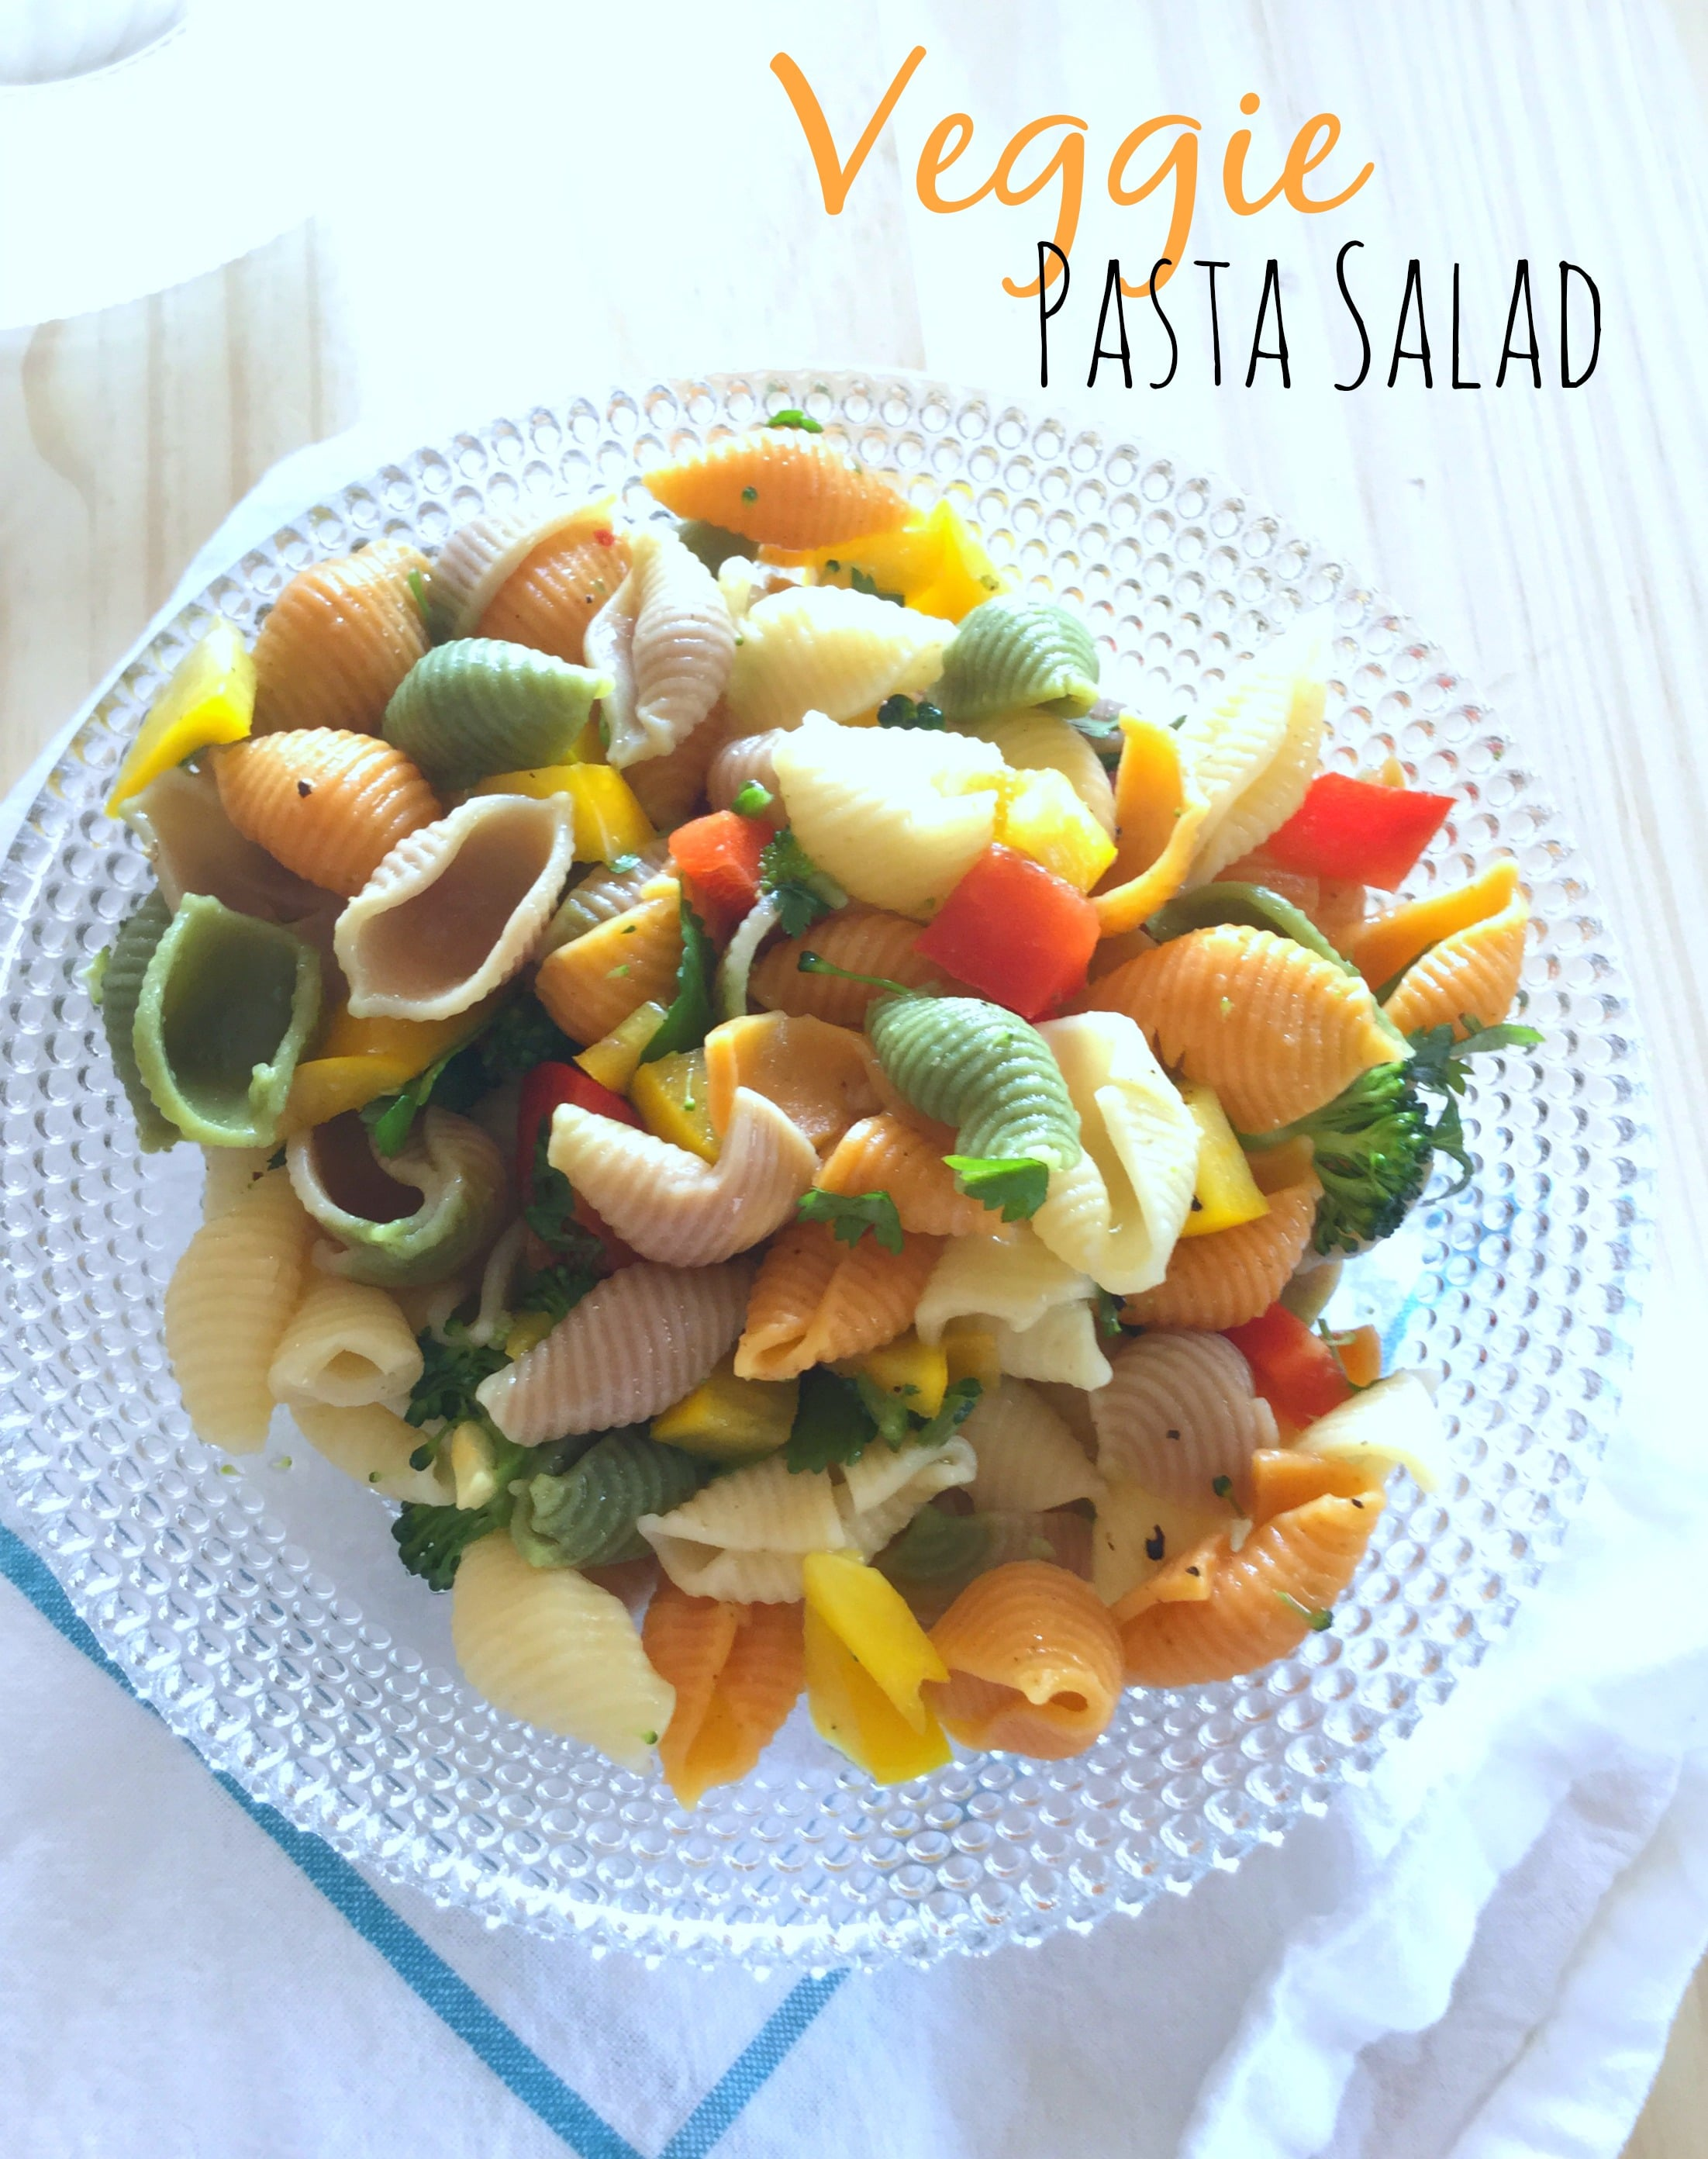 This Veggie Pasta Salad is filled with the best aromatic flavors of early spring.